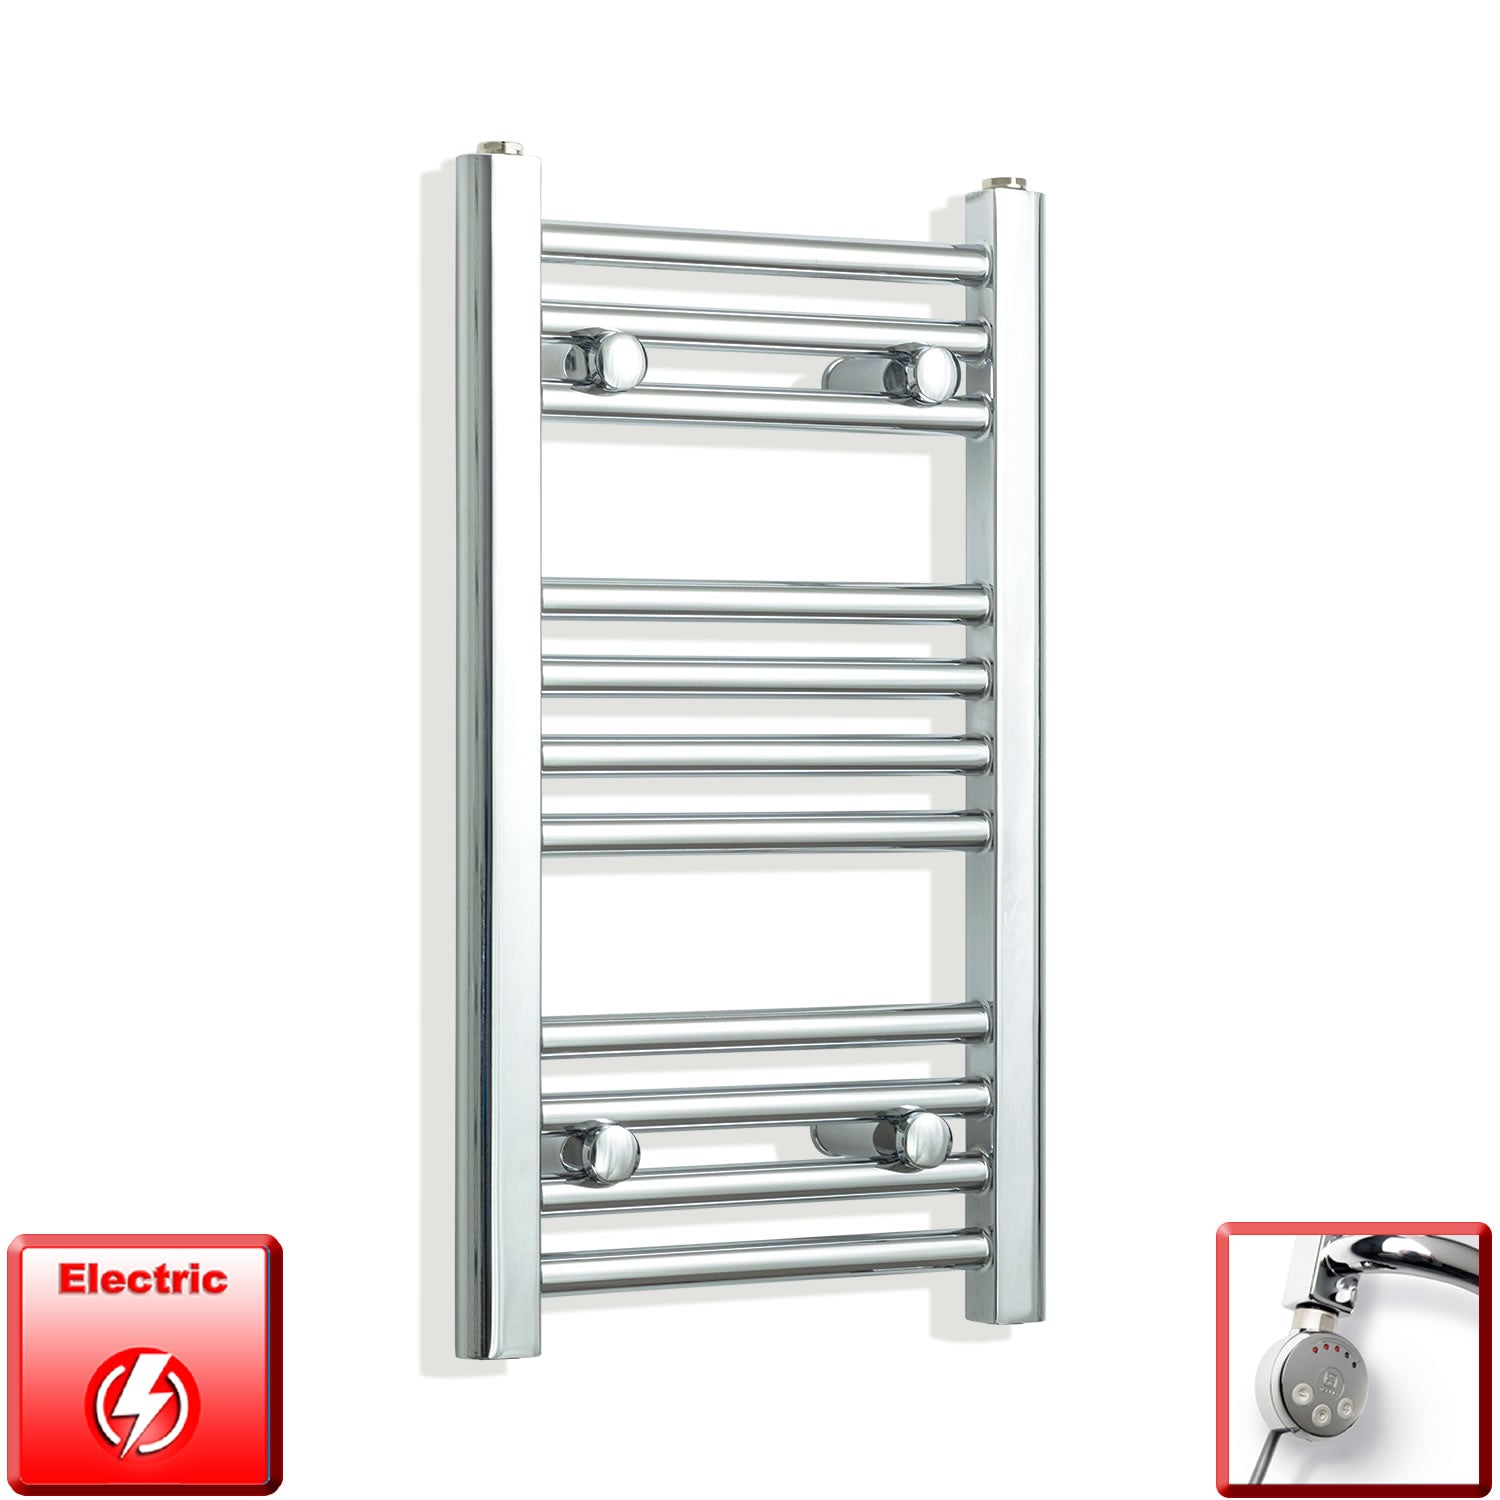 300mm Wide 600mm High Pre-Filled Chrome Electric Towel Rail Radiator With Thermostatic MEG Element